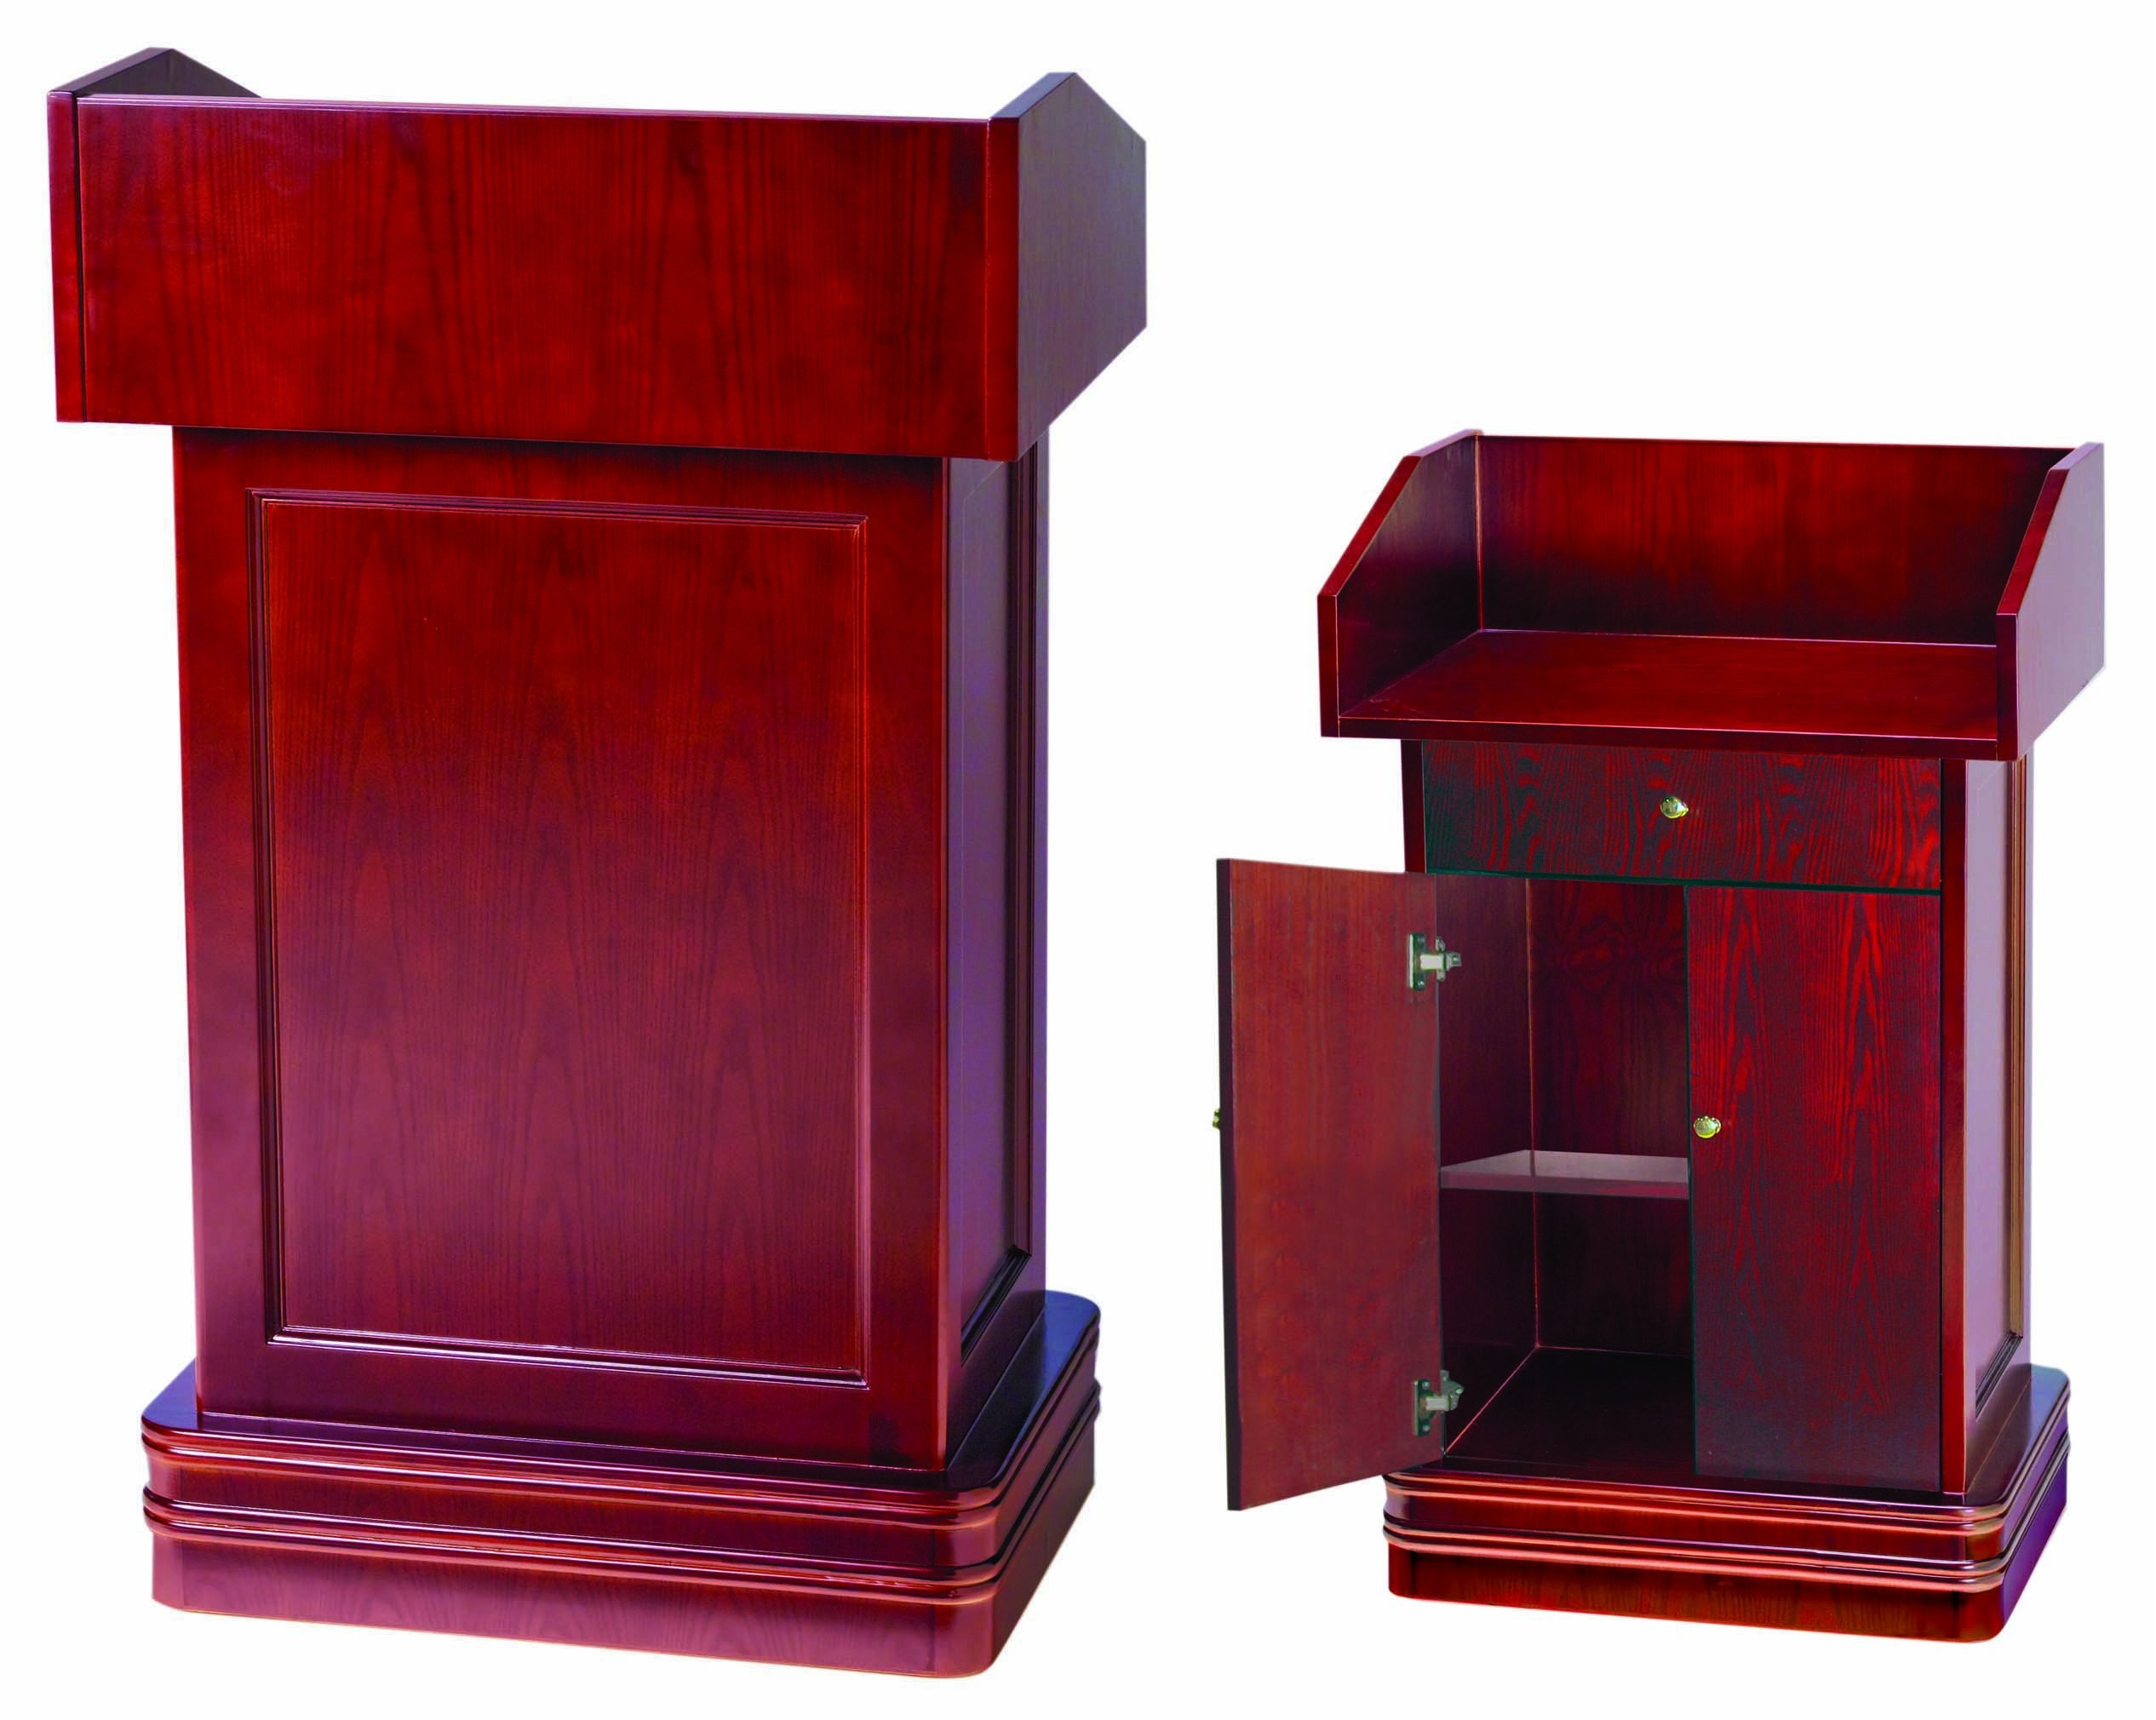 """Aarco Products POD-2 Classic Cherry Podium with Adjustable Shelf and Door 29-1/8"""" L x 21-5/8""""W x 47-1/4""""H"""